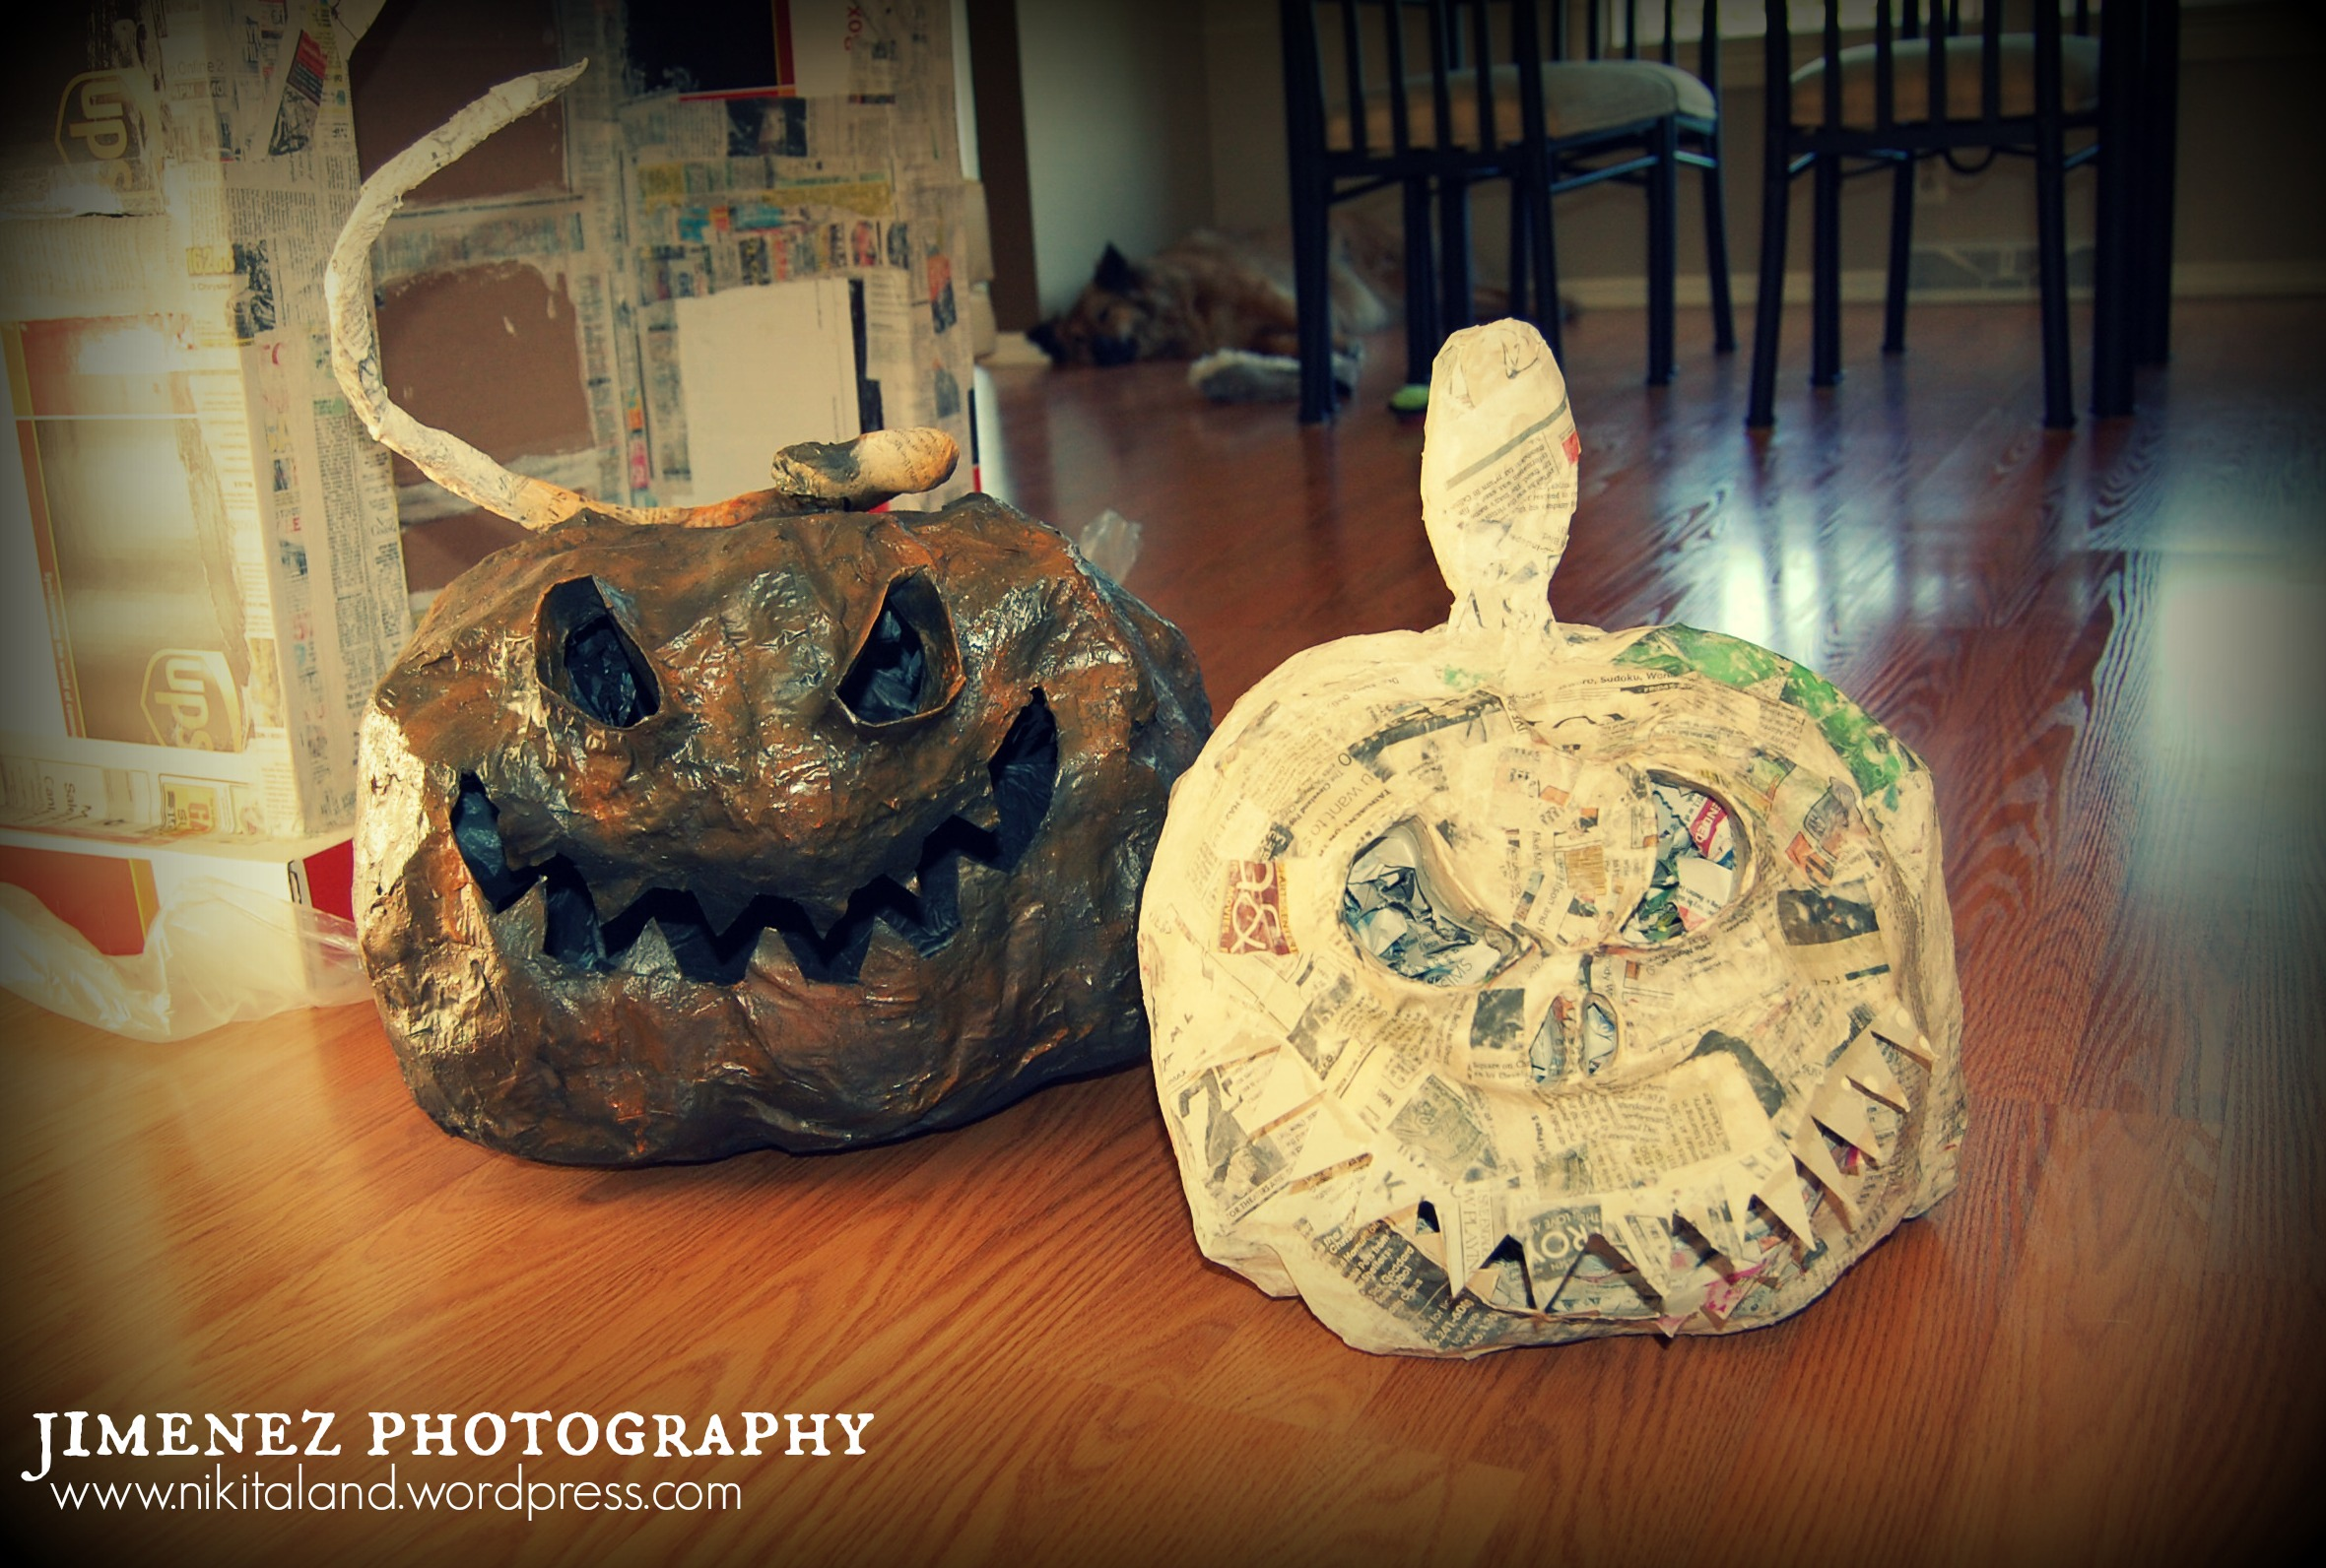 Paper mache halloween projects nikitaland for Paper mache crafts